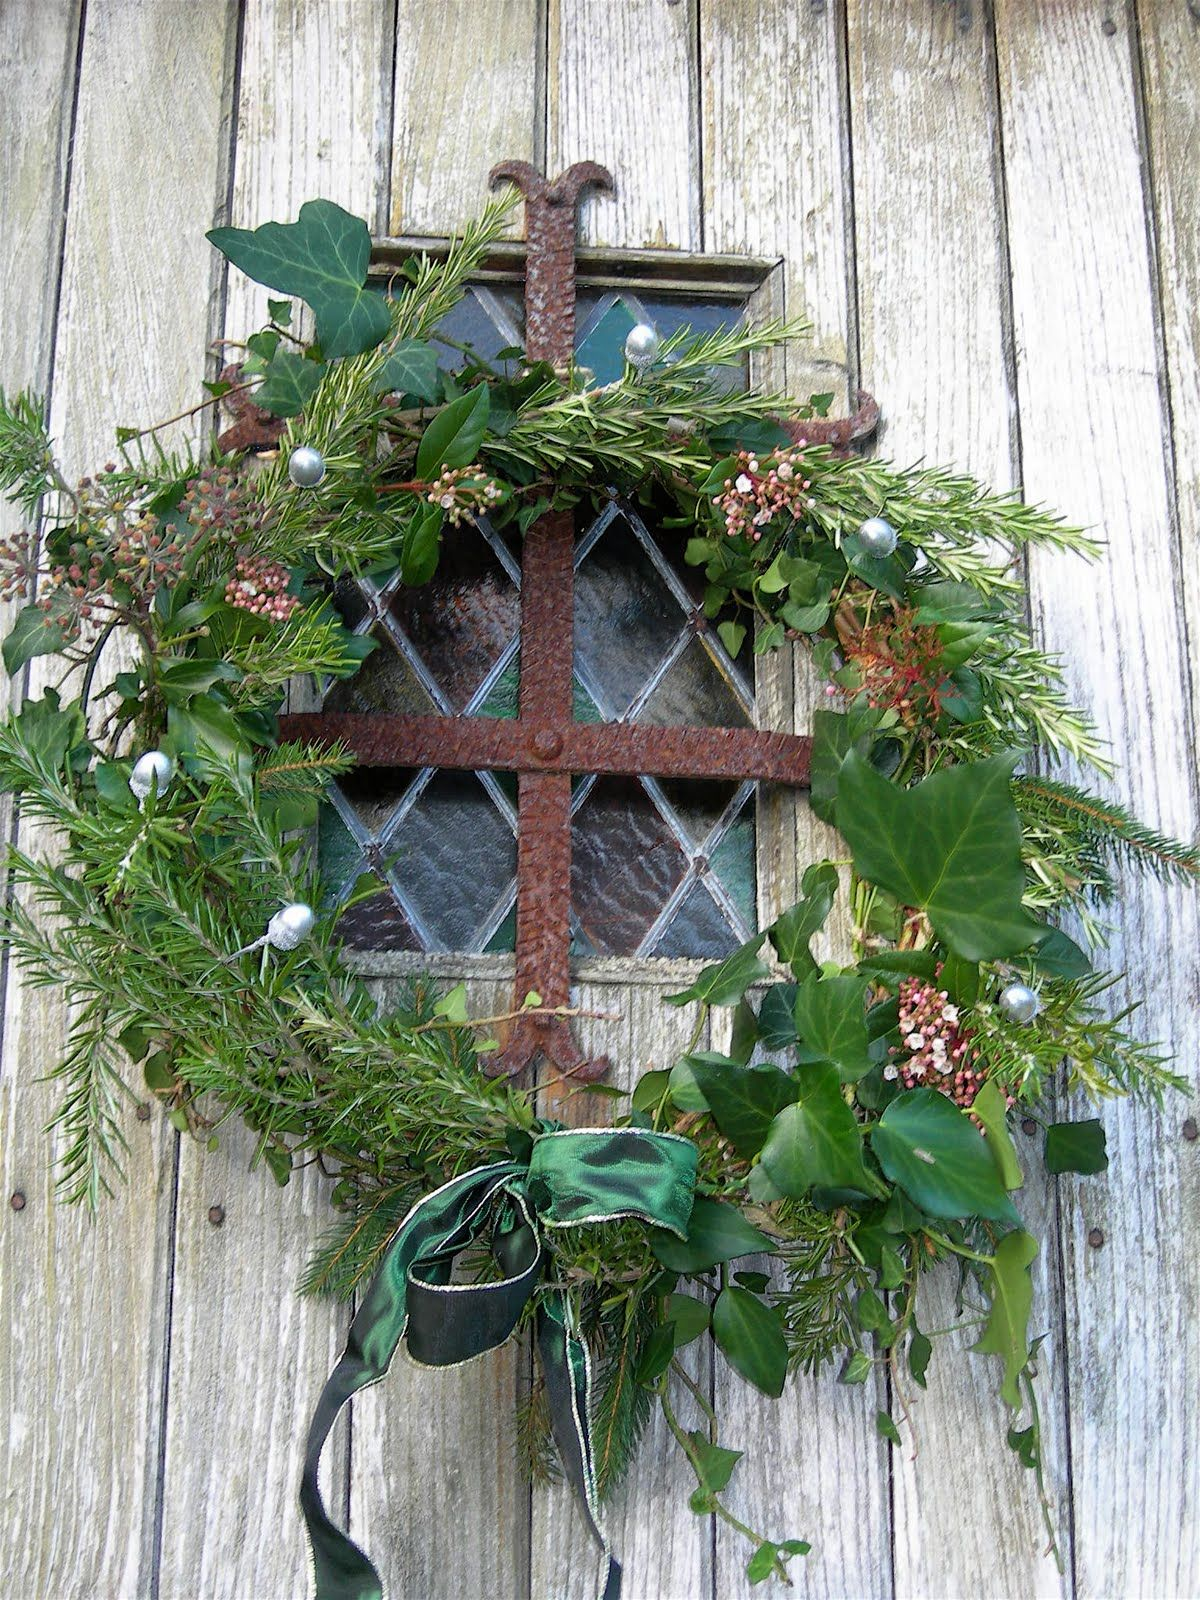 wreath over a pretty window - or set one behind an old window as display